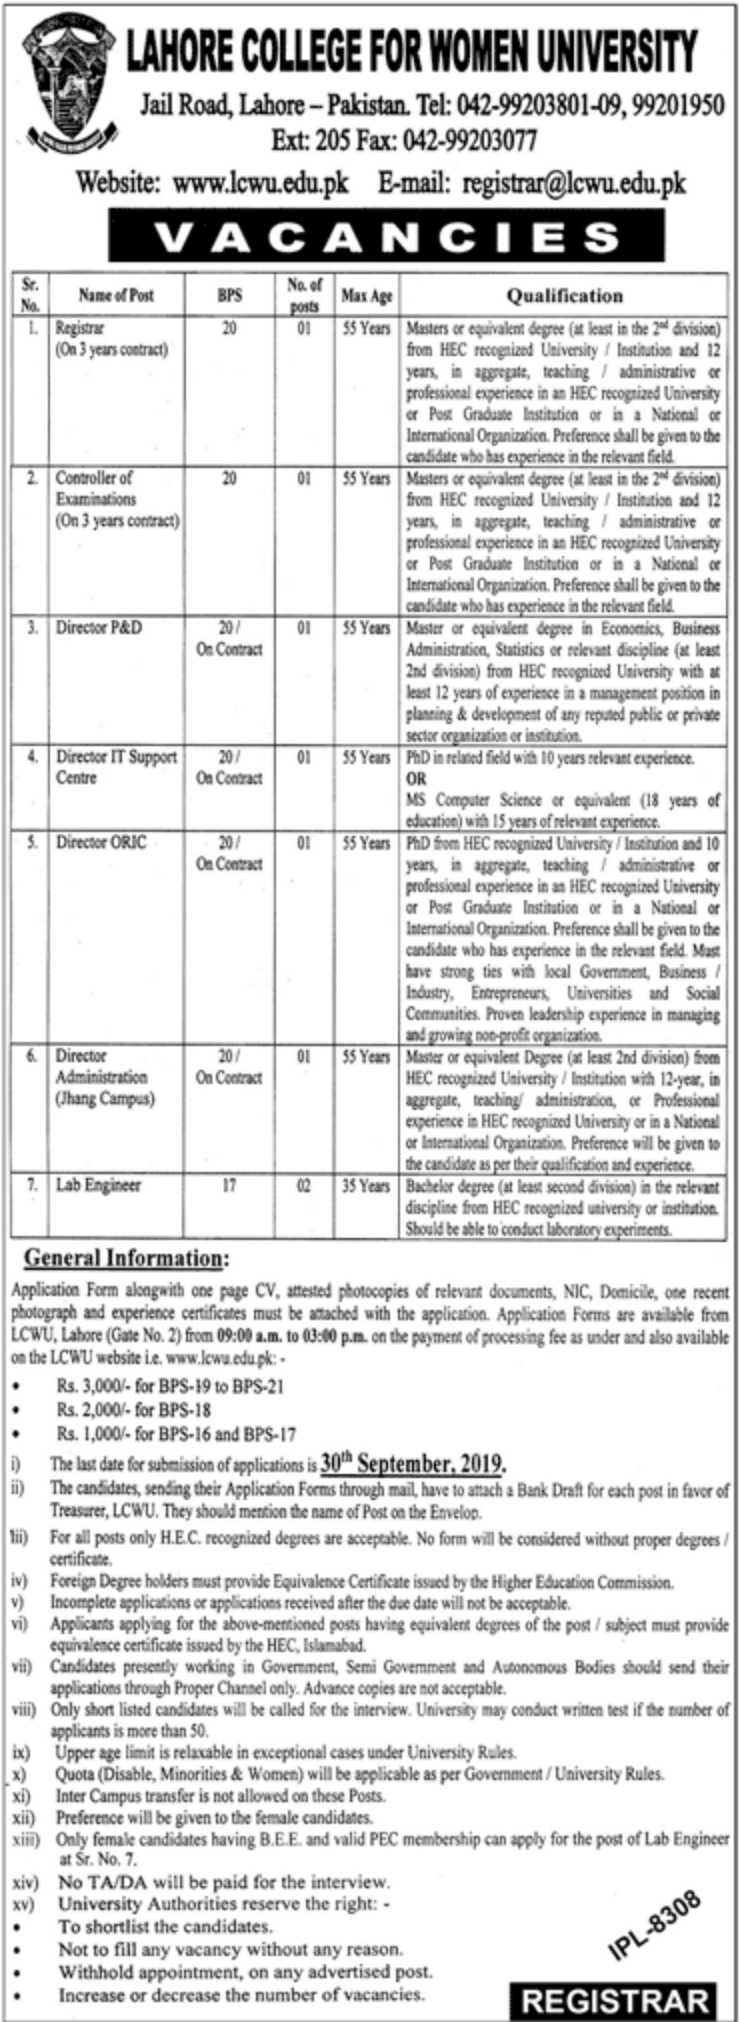 Lahore College for Women University LCWU Jobs 2019 Download Application Form